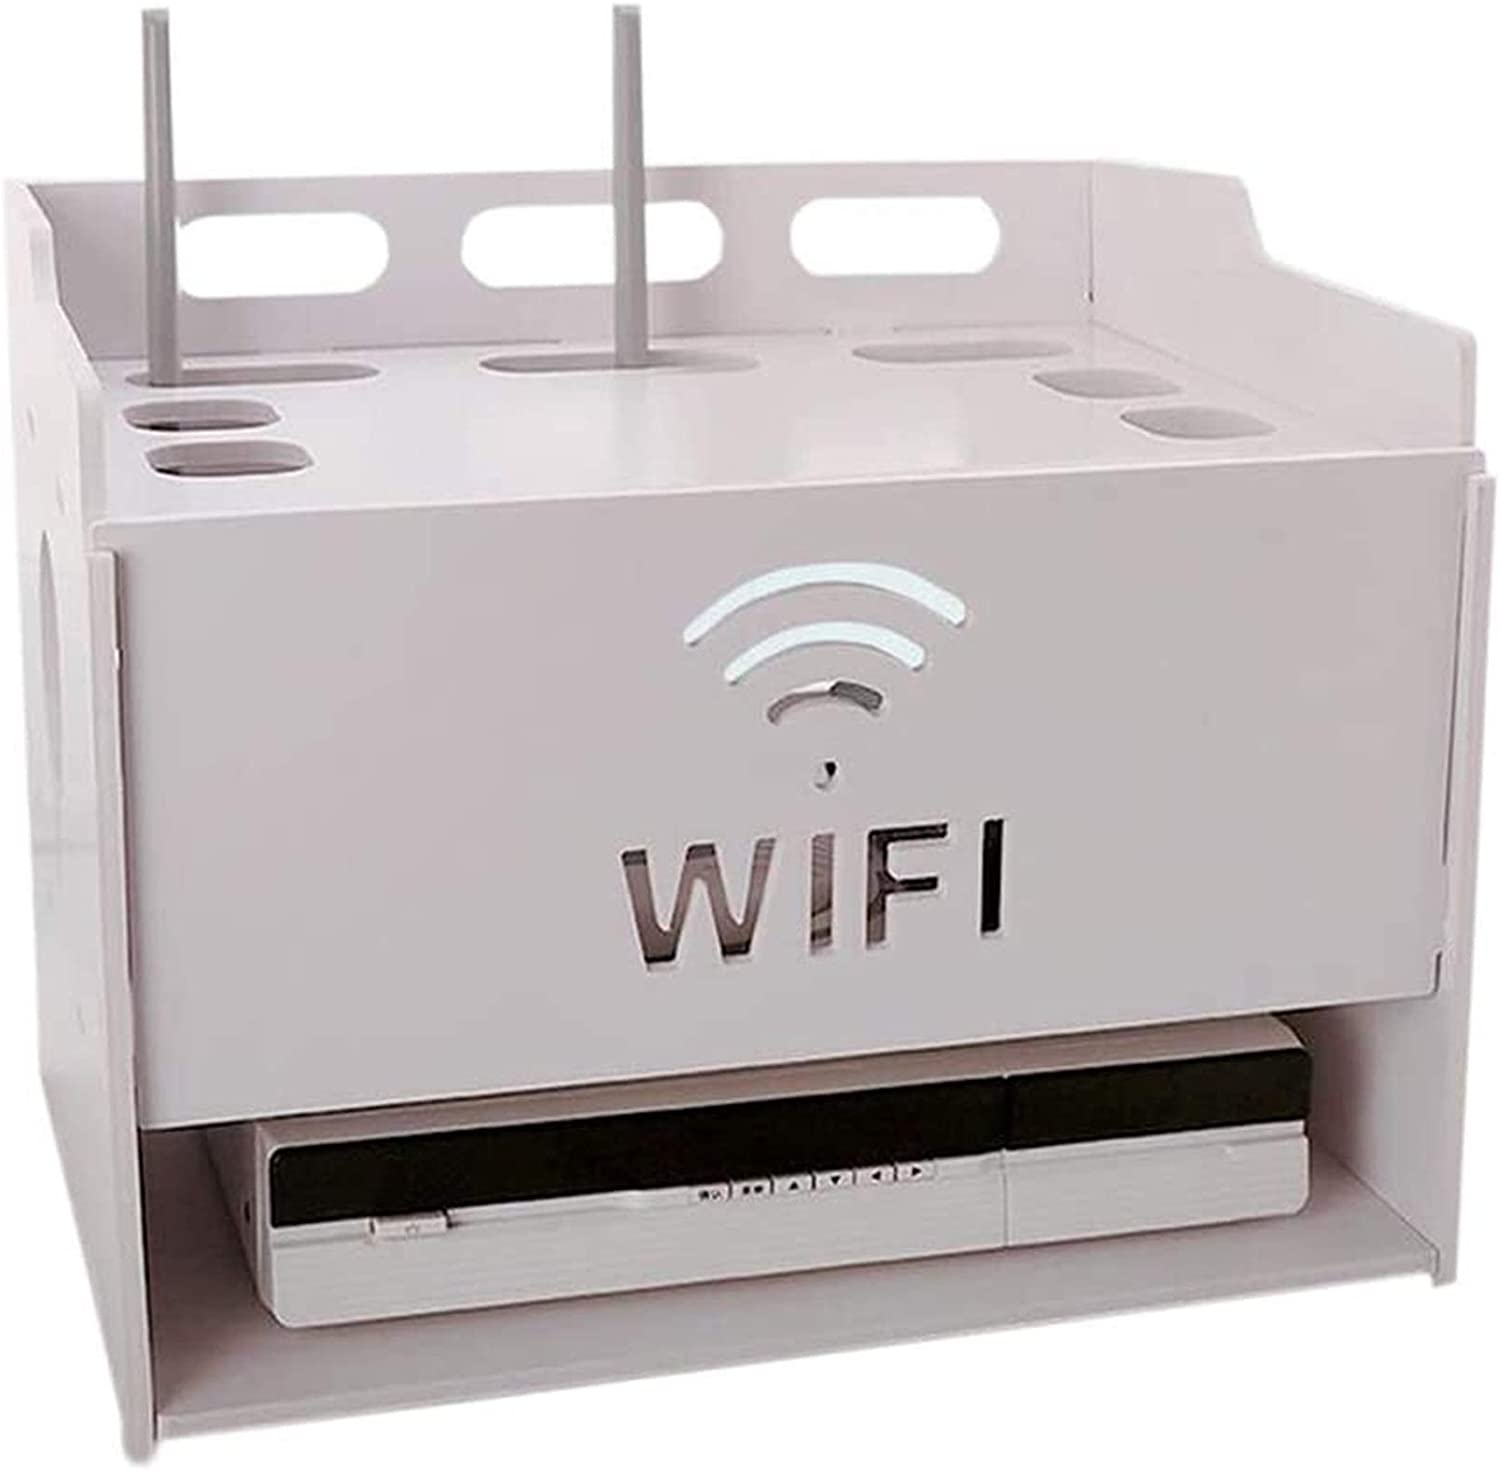 GJJSZ Router Rack Set Mesa Mall Top Box Thickened Ranking TOP11 Wireless WiFi Shelf and